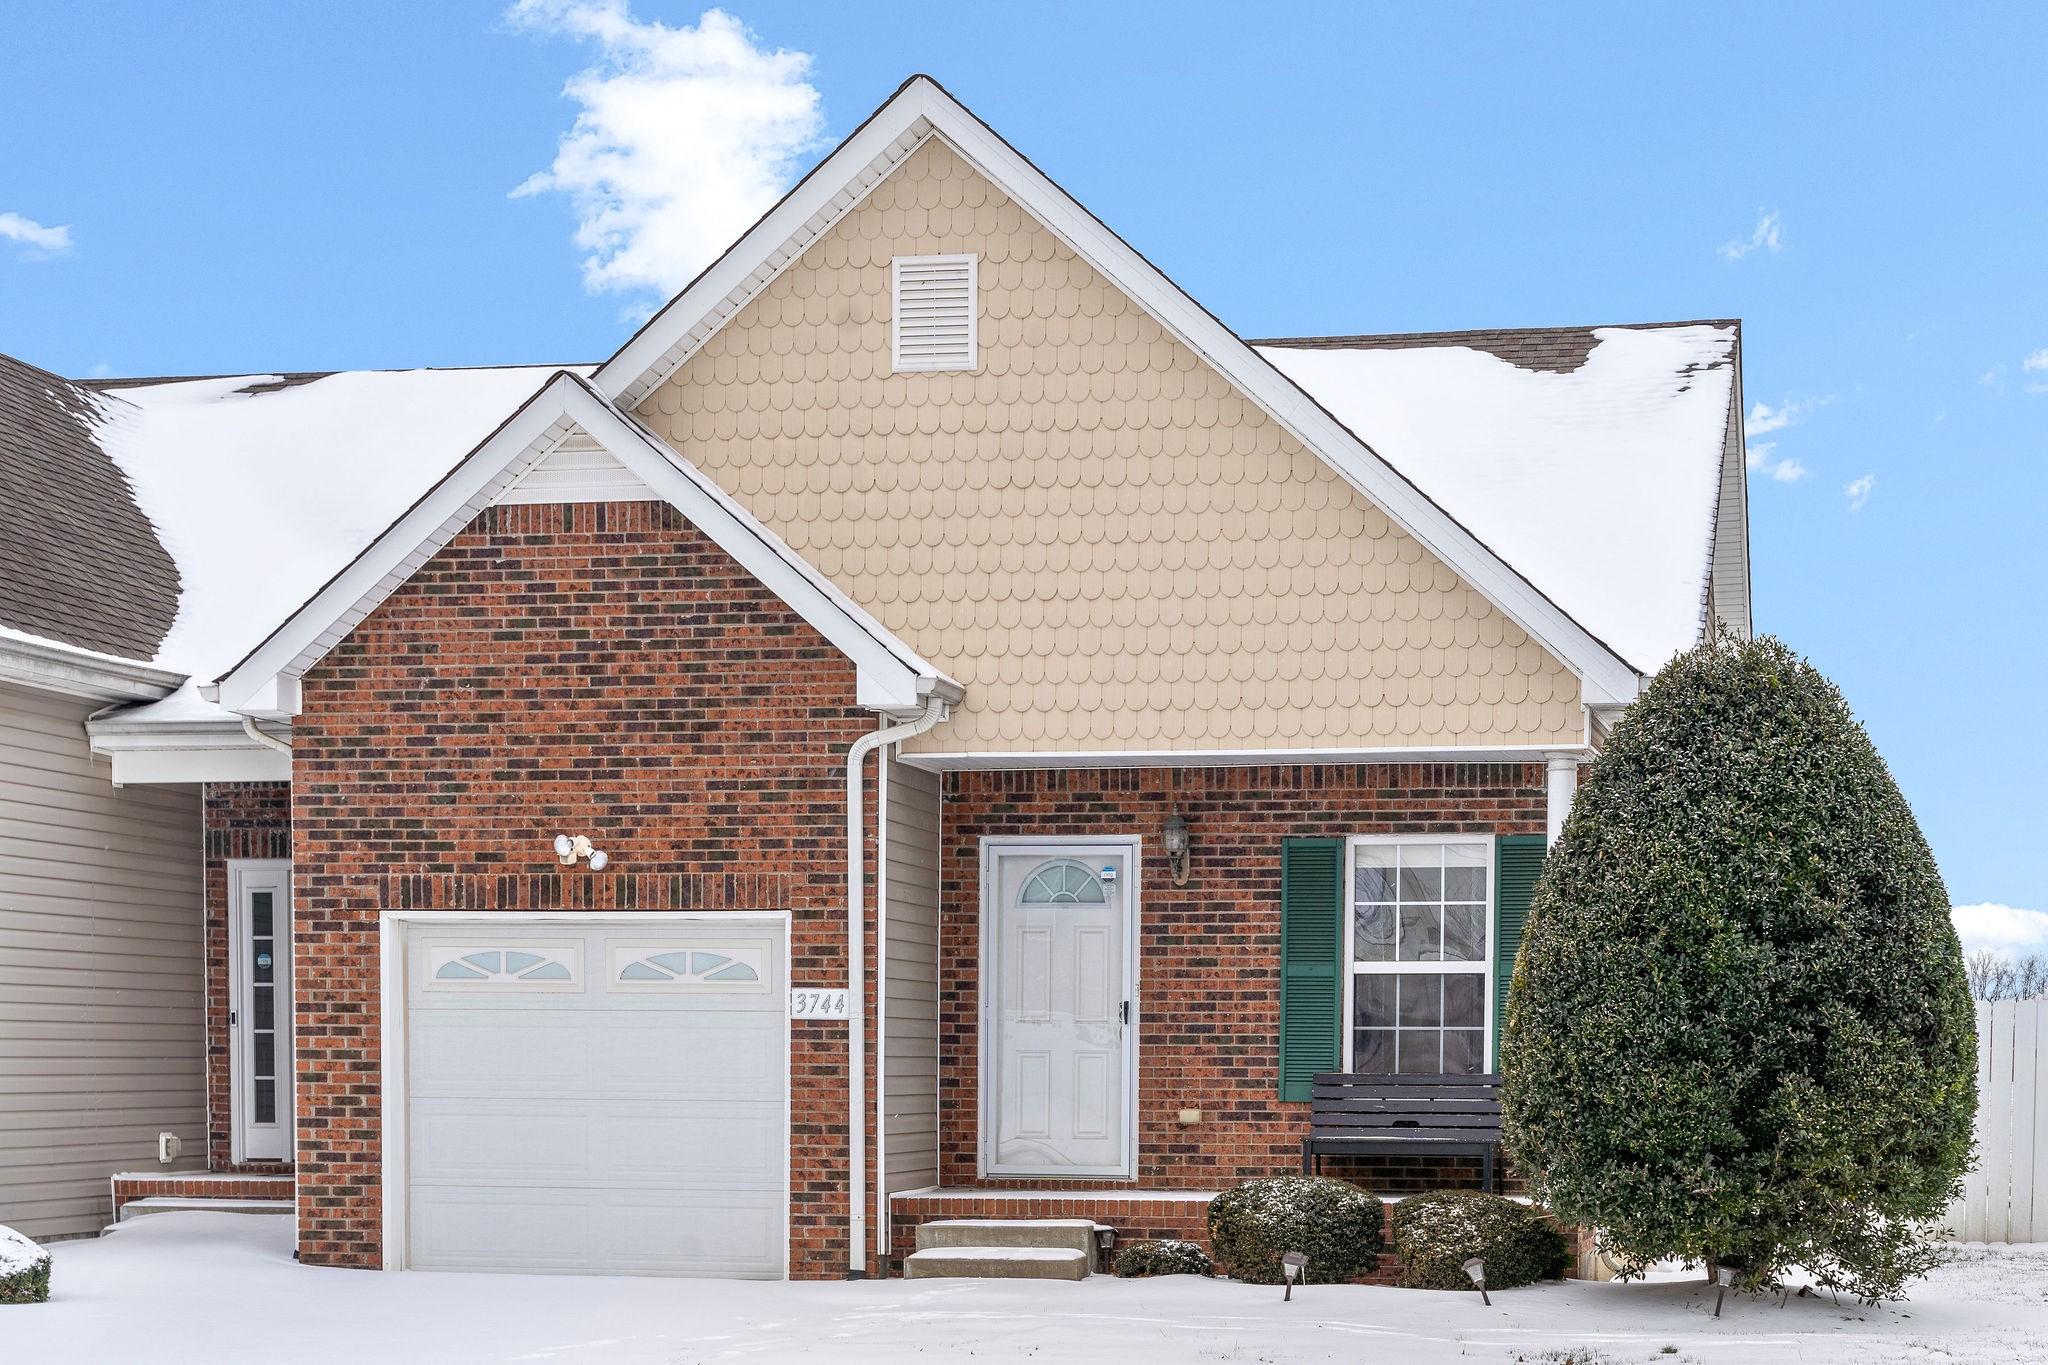 Check Out This Open Concept Home w/9 Foot Ceilings ~ HVAC, Carpet, Microwave, Dishwasher All less than 18 Months Old ~ Pergo Flooring in Living Room and Hall ~ Conveniently Located Near Exit 1 on I-24 - Private Side Patio - No Backyard Neighbors - All Appliances & Bedroom Curtains Convey - PUD Community